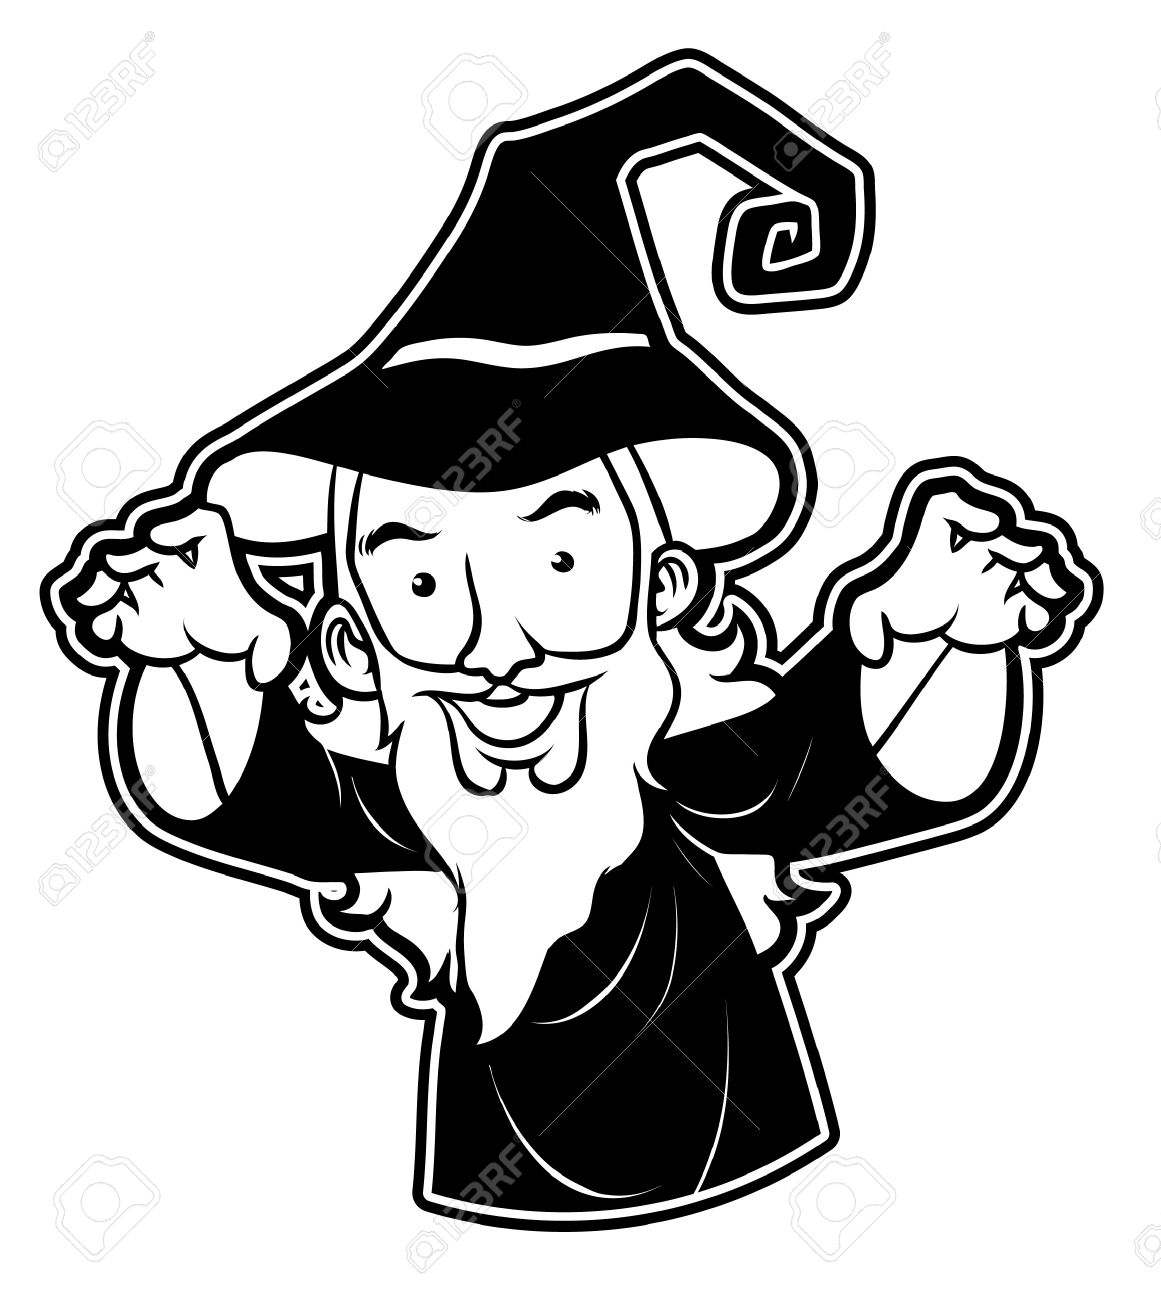 Black And White Clipart Wizard Royalty Free Cliparts, Vectors, And.